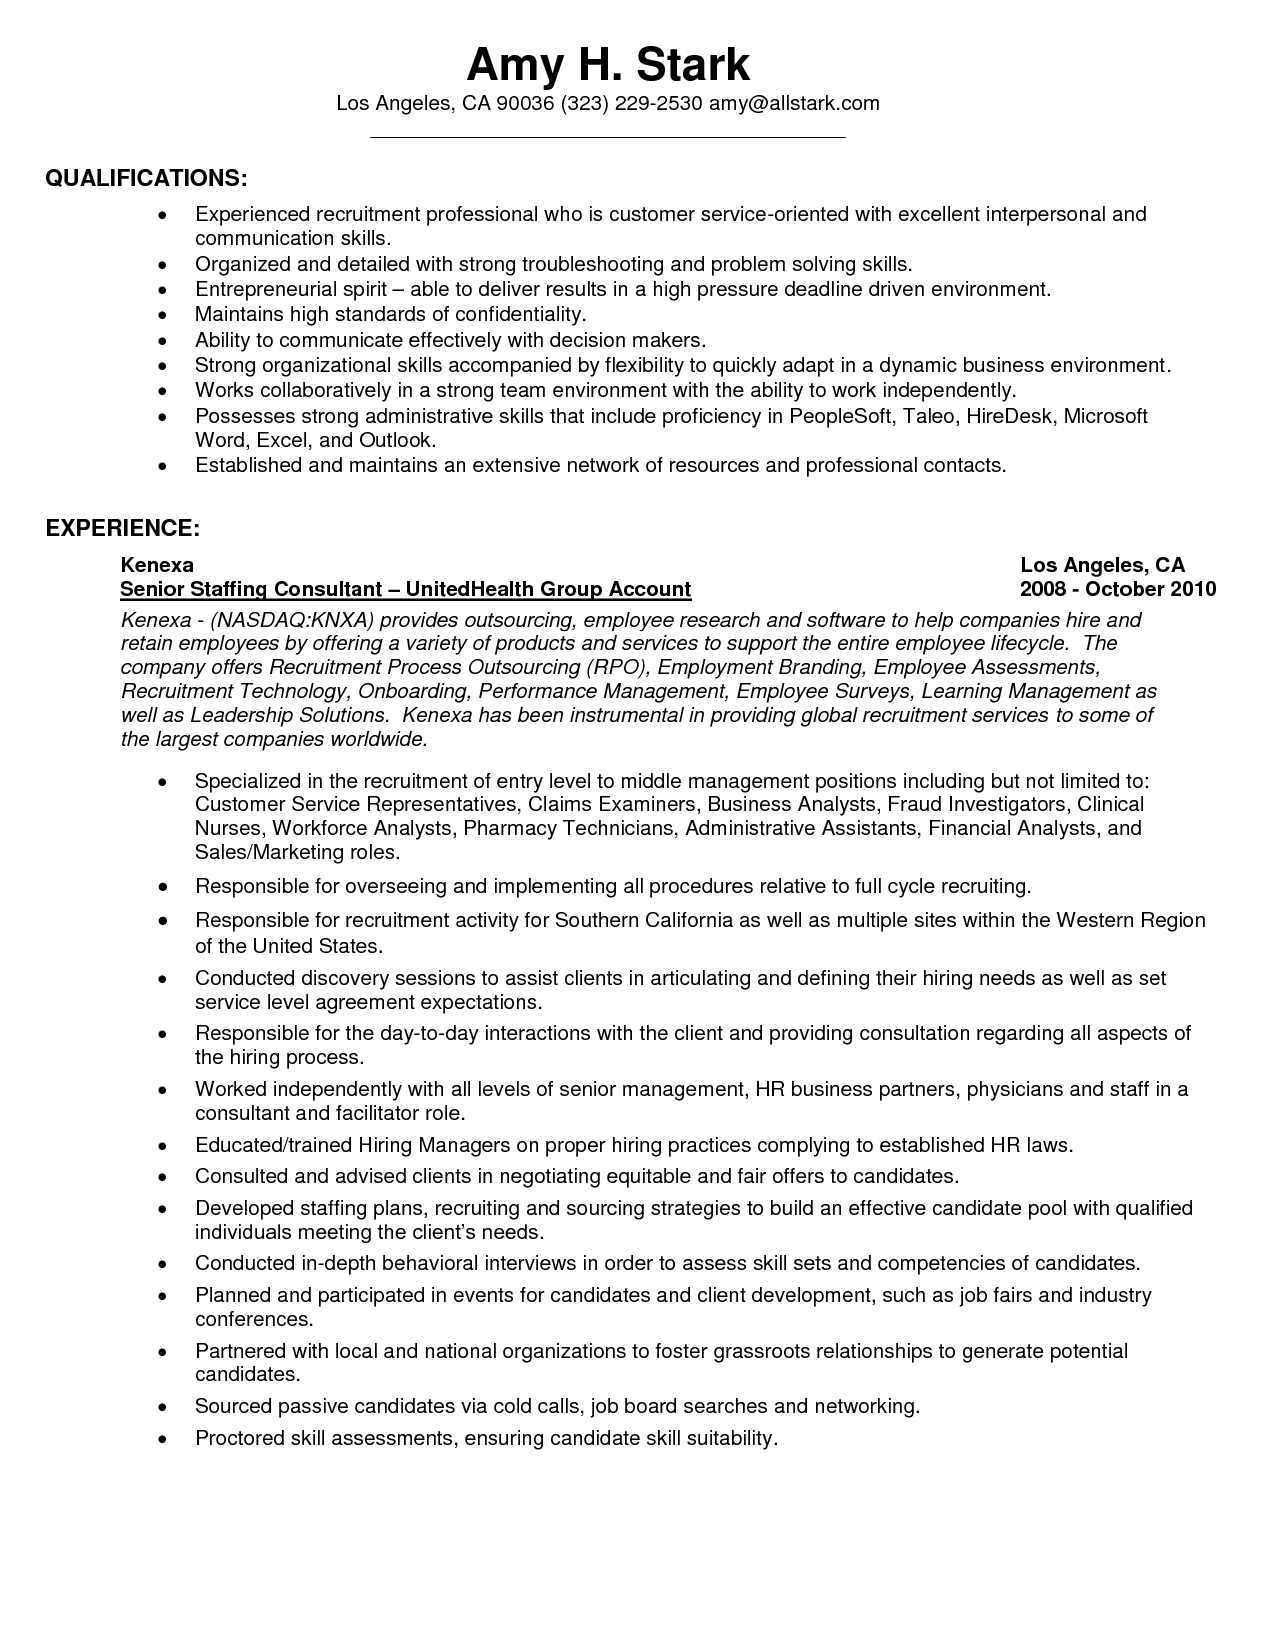 Skills Resume Template Kfc Jobs Food And Restaurant Resume Sample Samplebusinessresume